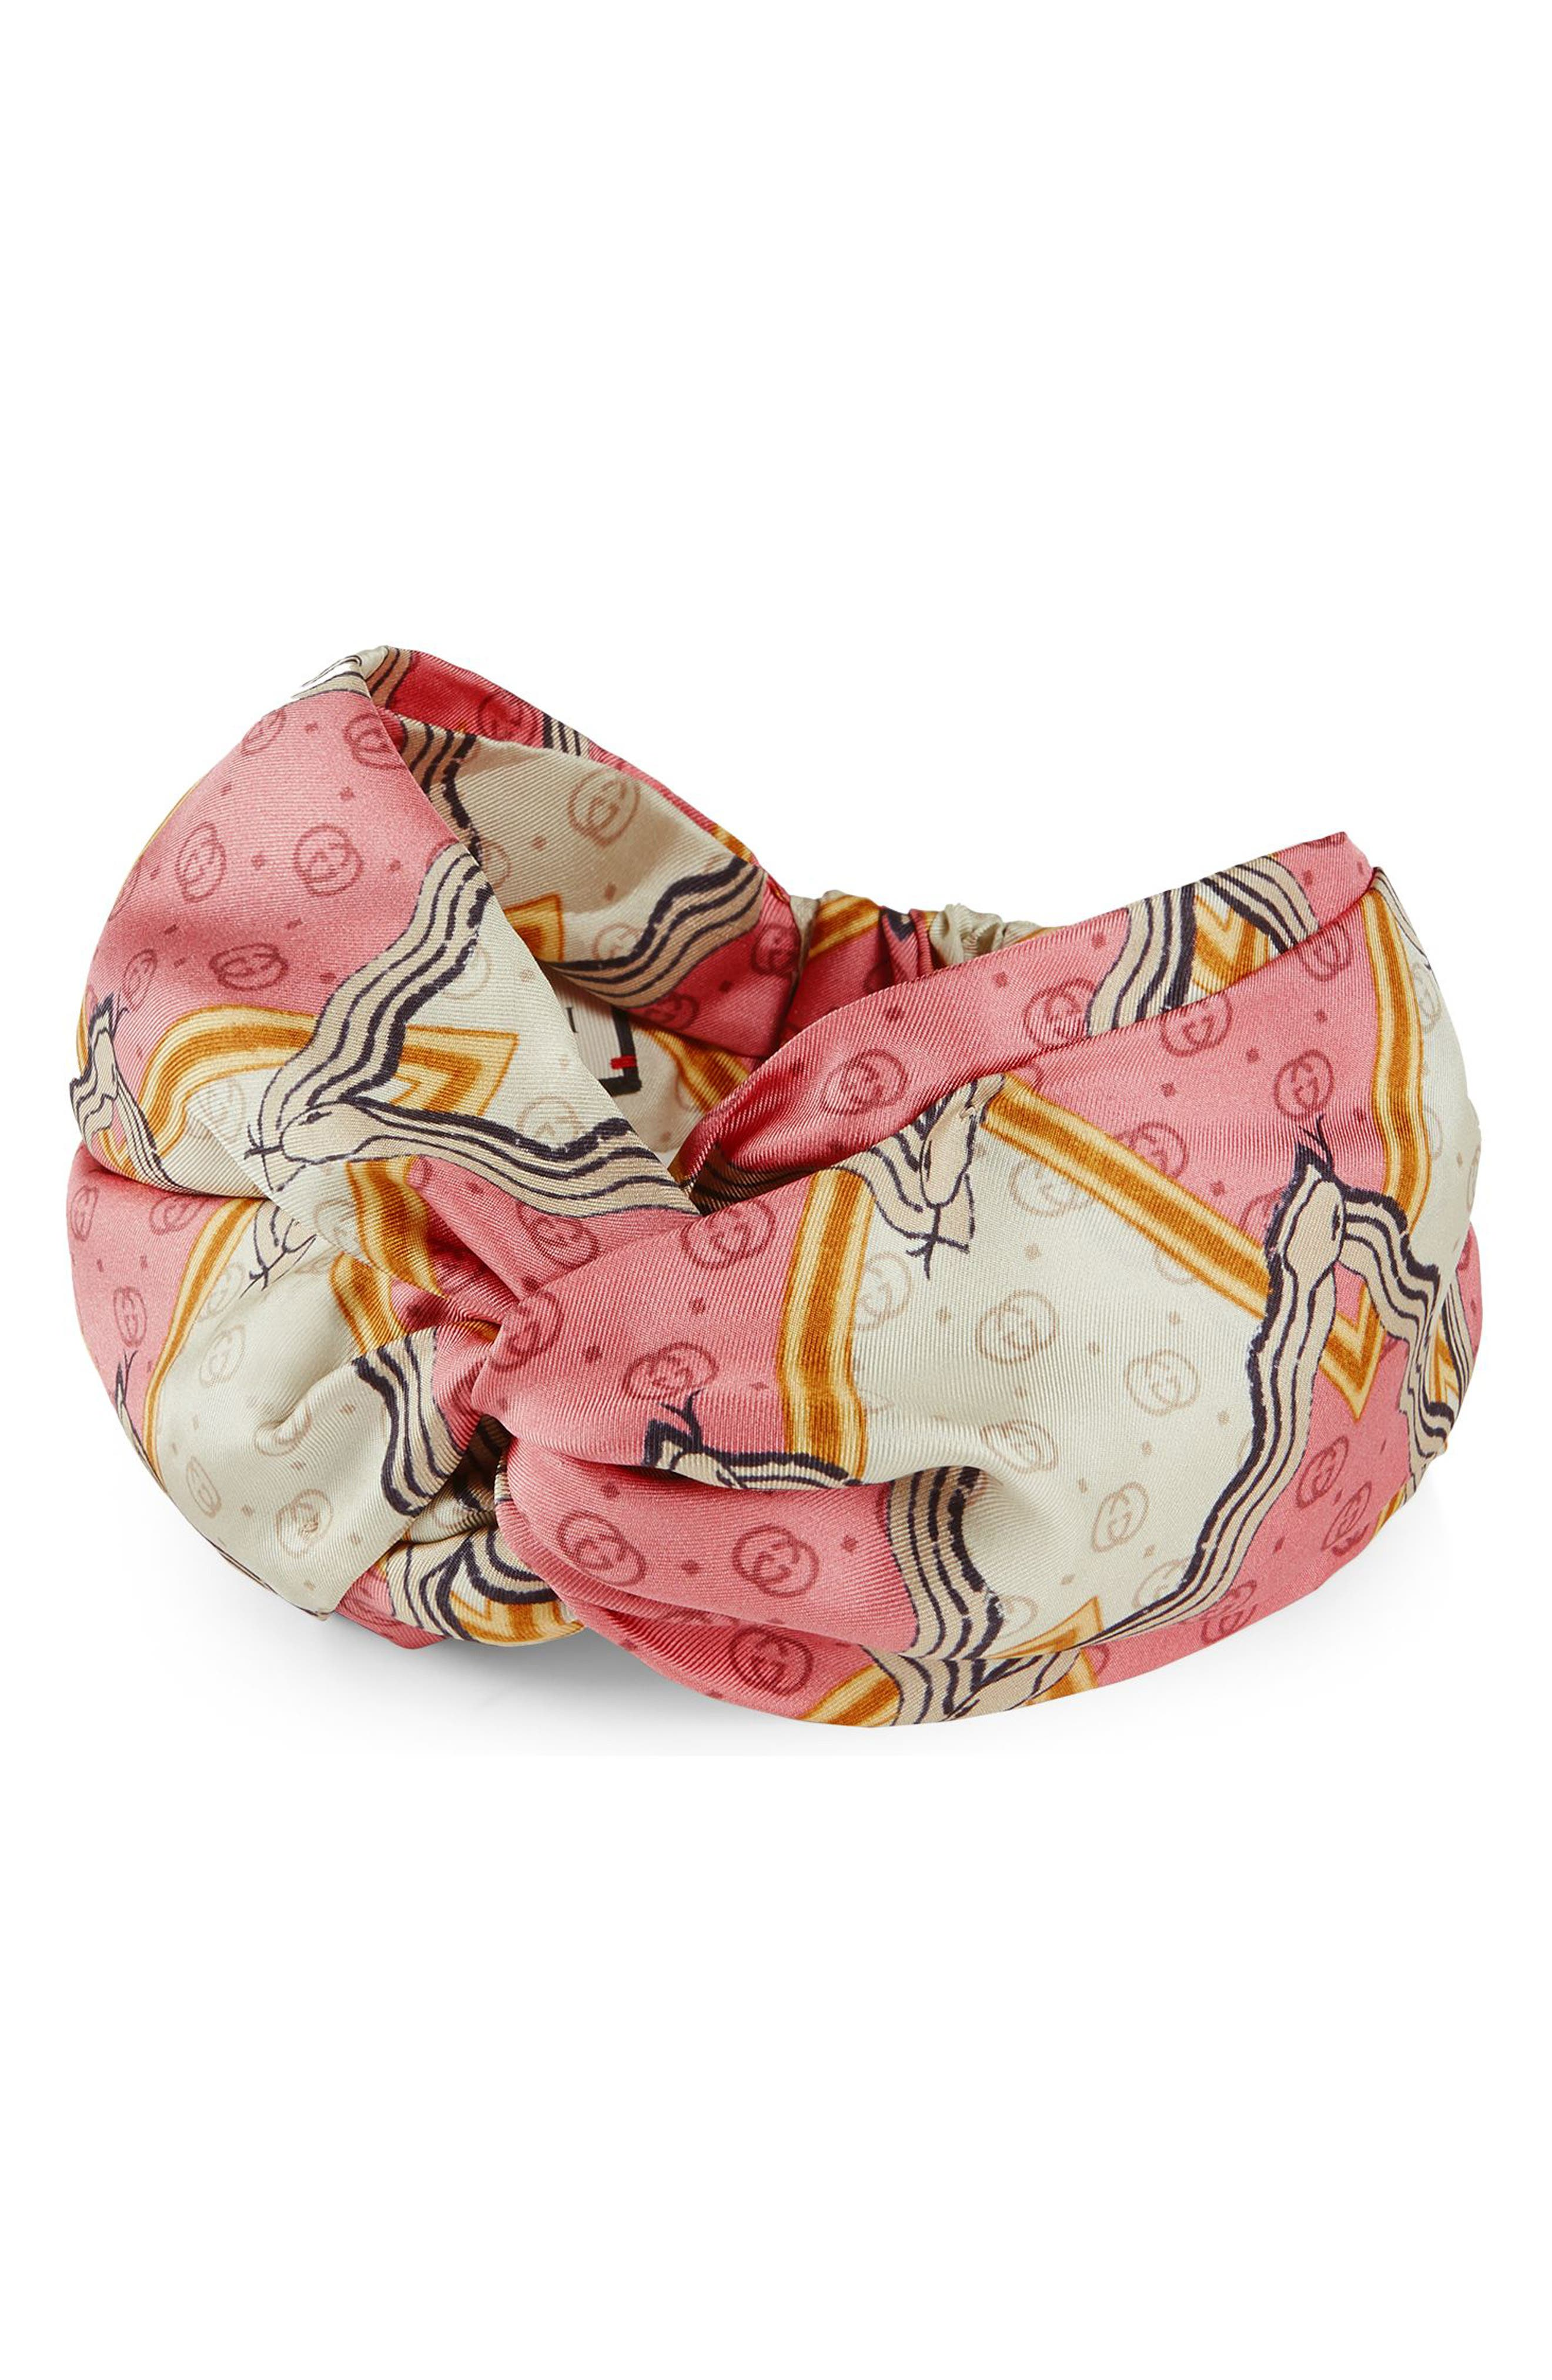 GUCCI, Snake Print Silk Headband, Main thumbnail 1, color, 950